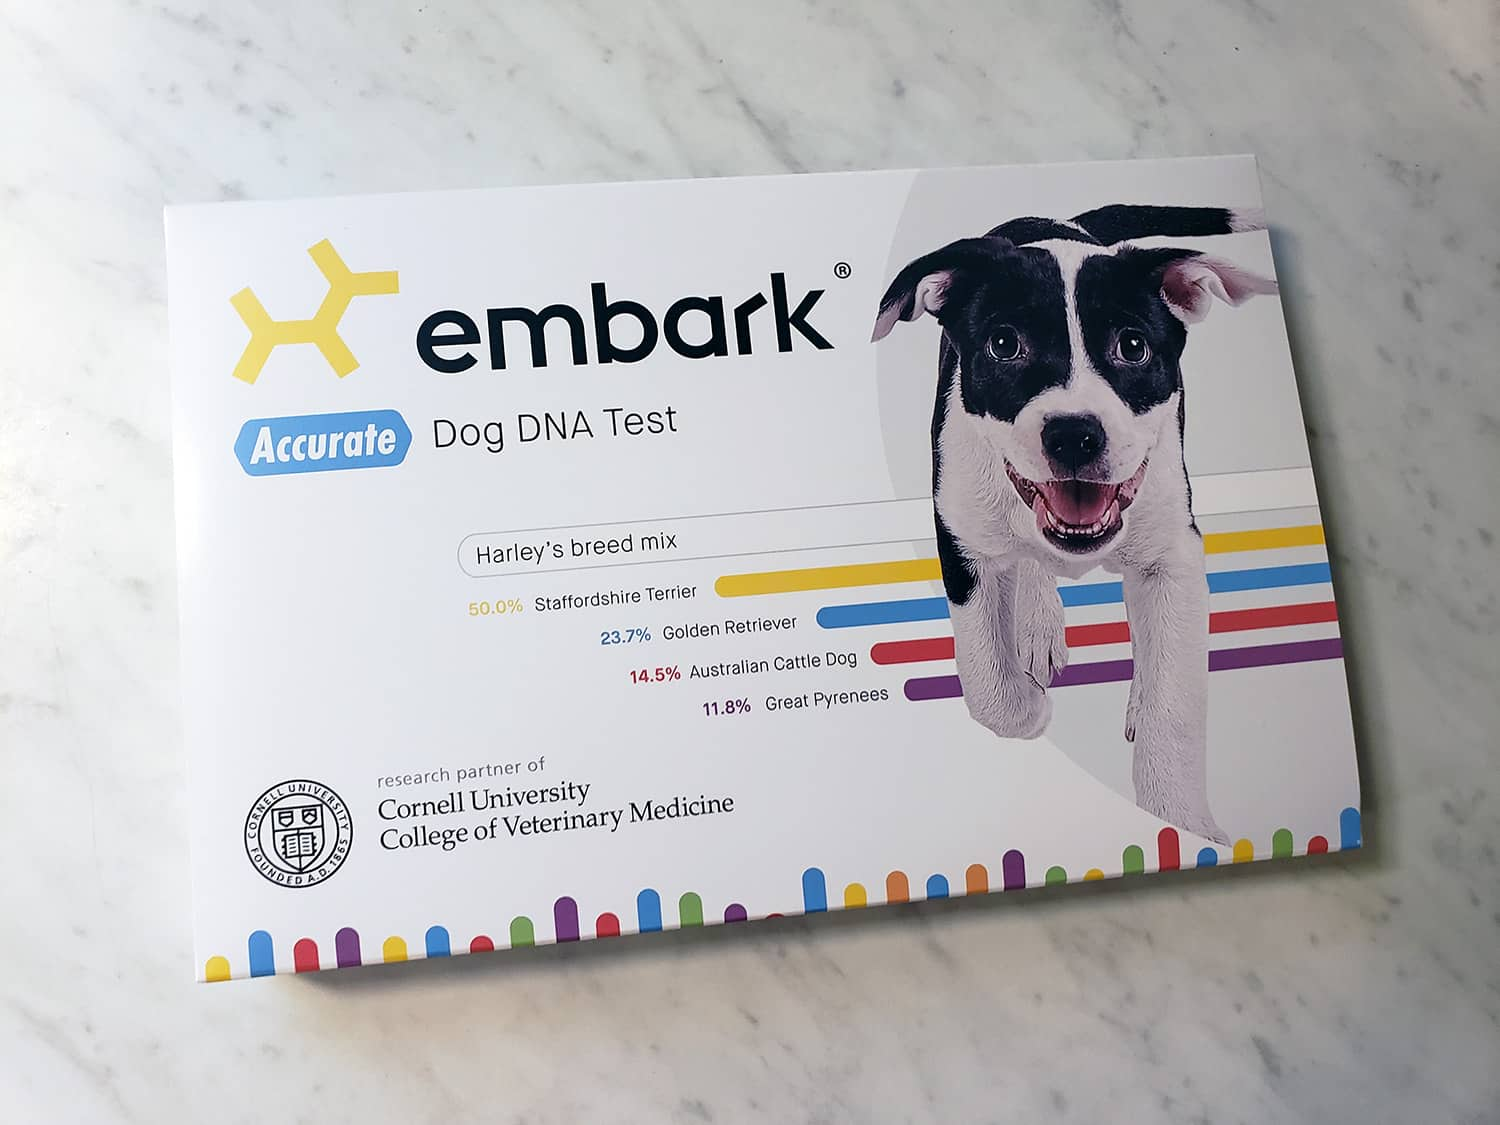 embark dna kit